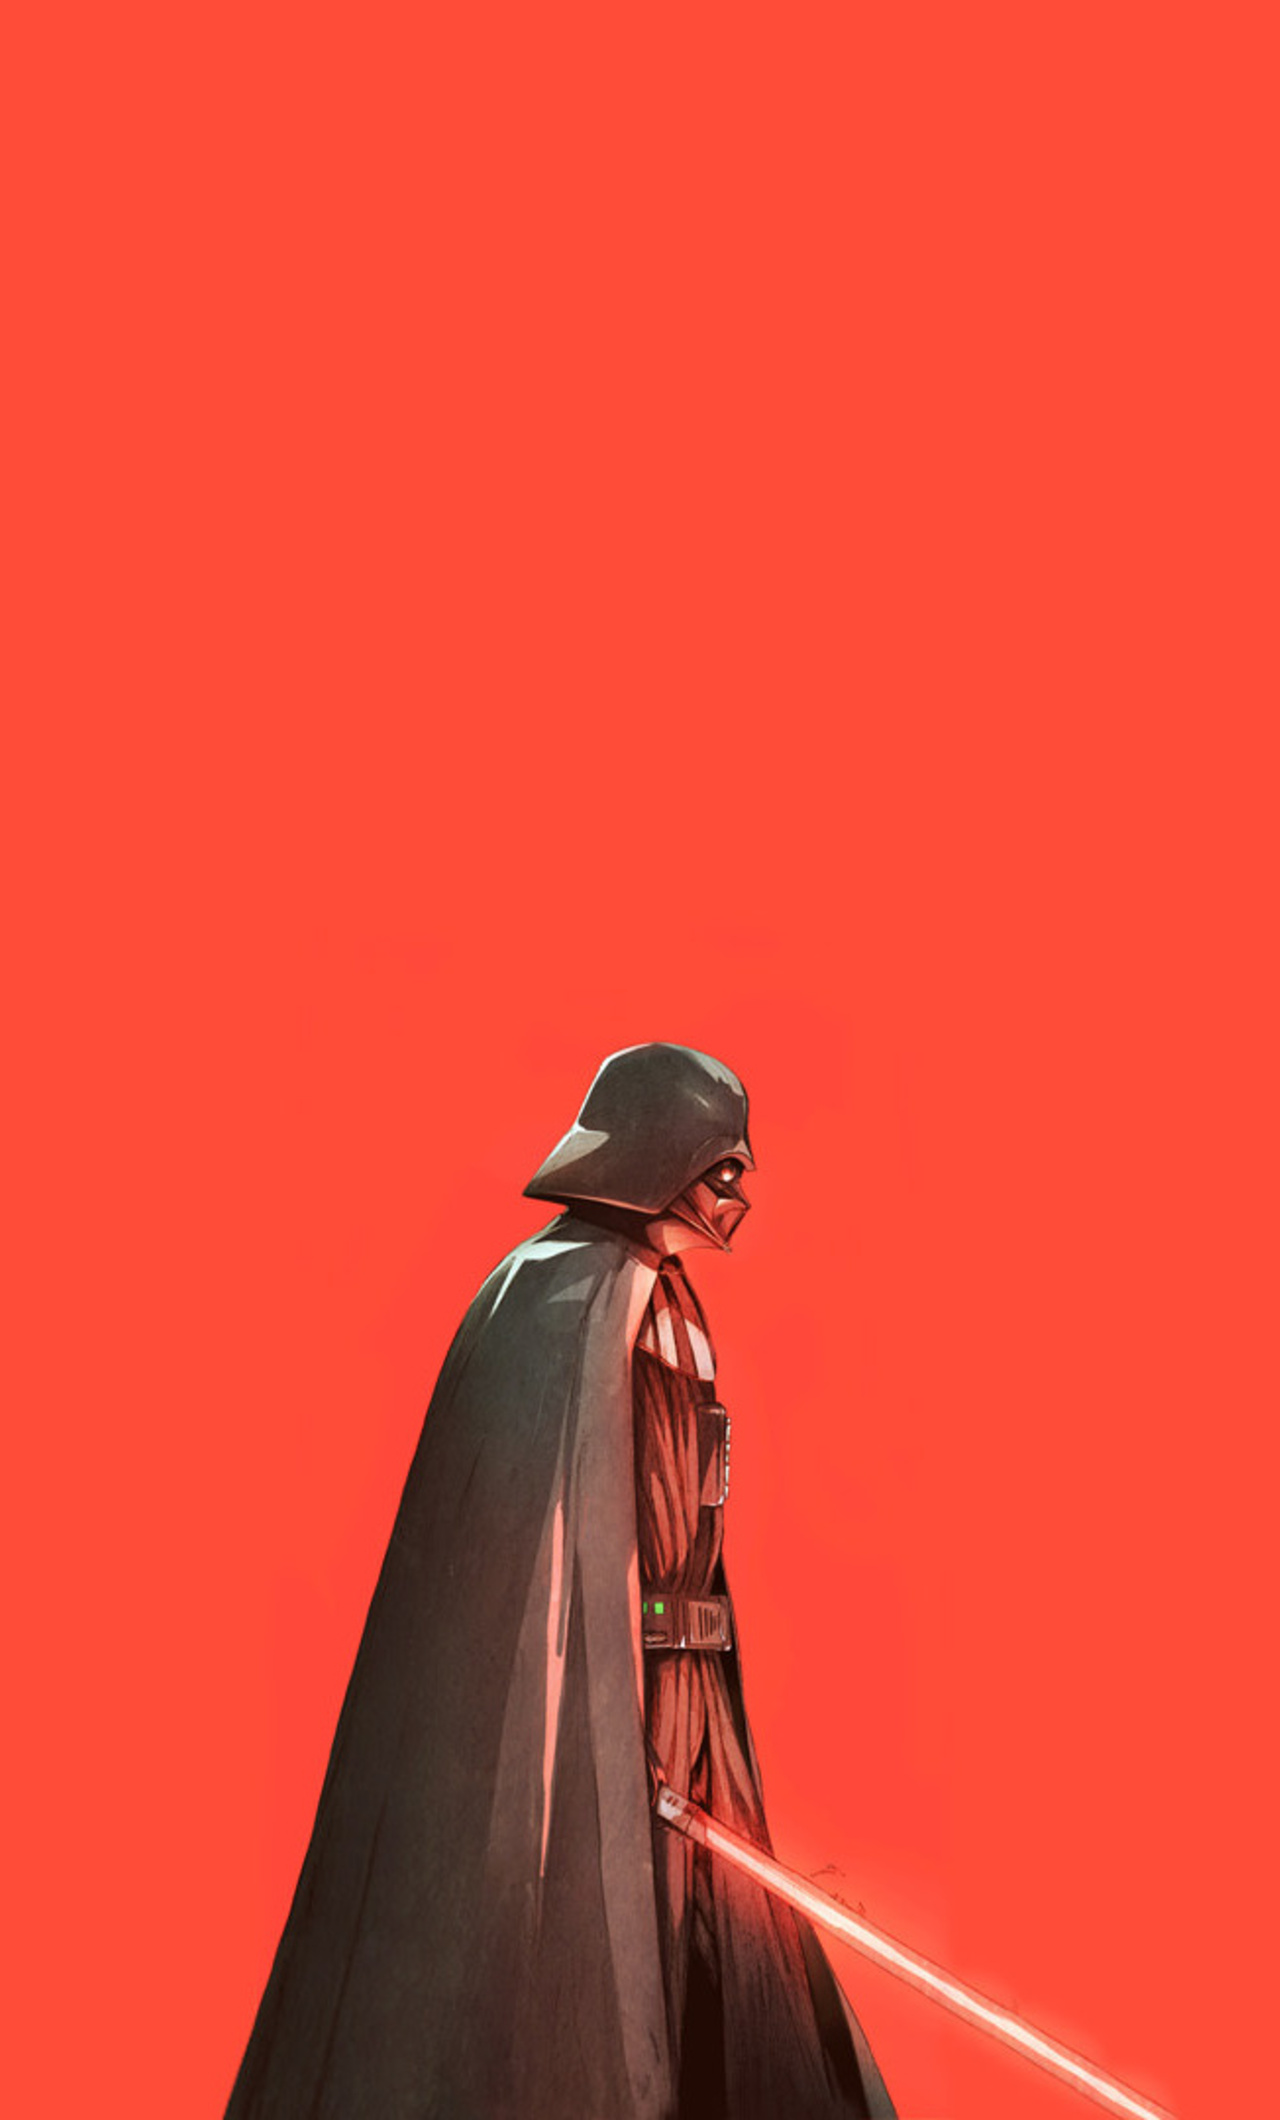 Darth Vader Artwork Hd Wv